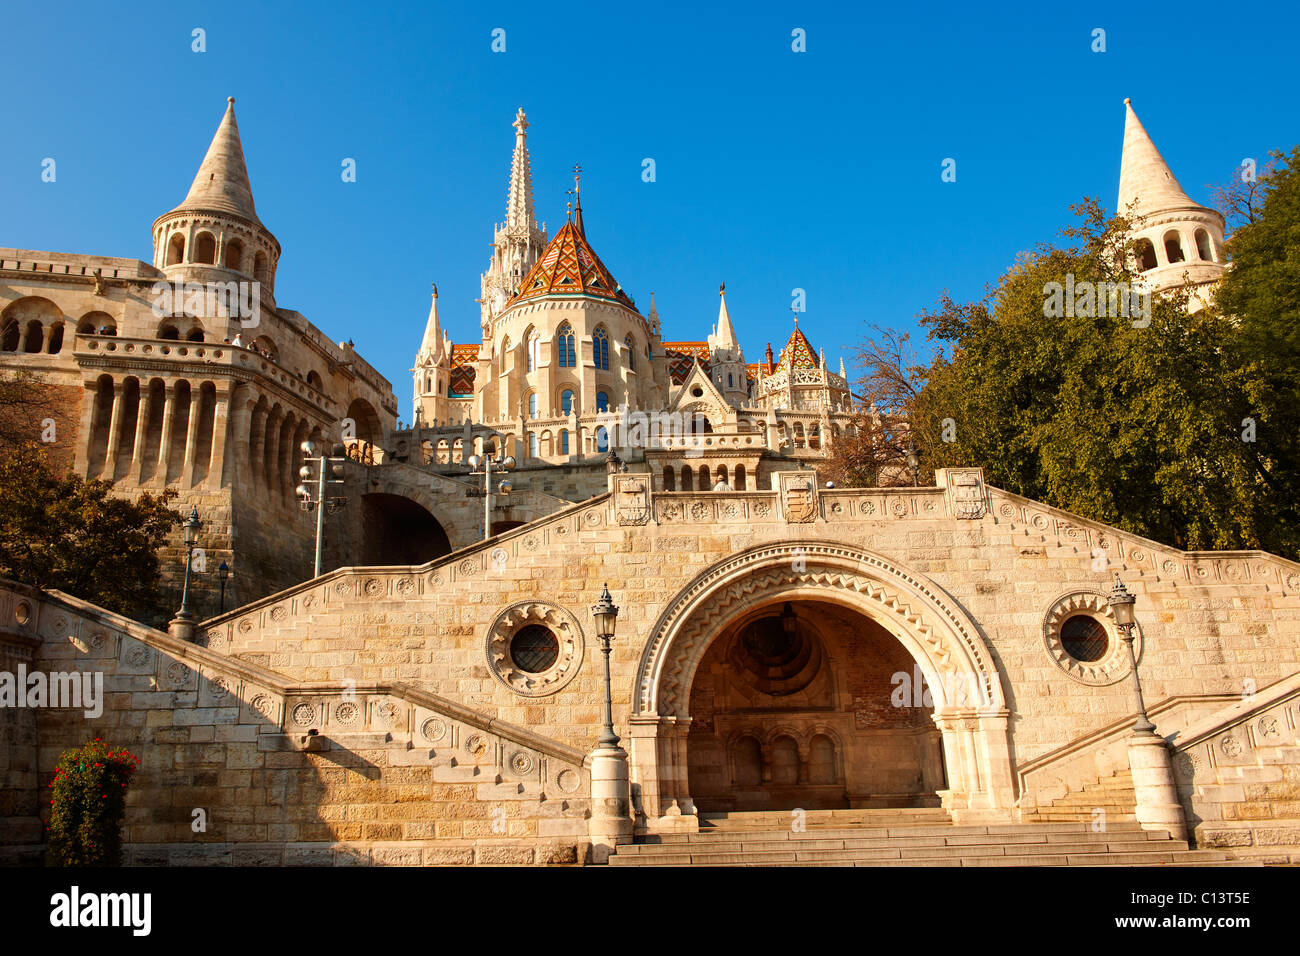 Fishermans Bastion and Church of Our Lady or Matthias Church ( Mátyás templom), Castle District, Budapest - Stock Image